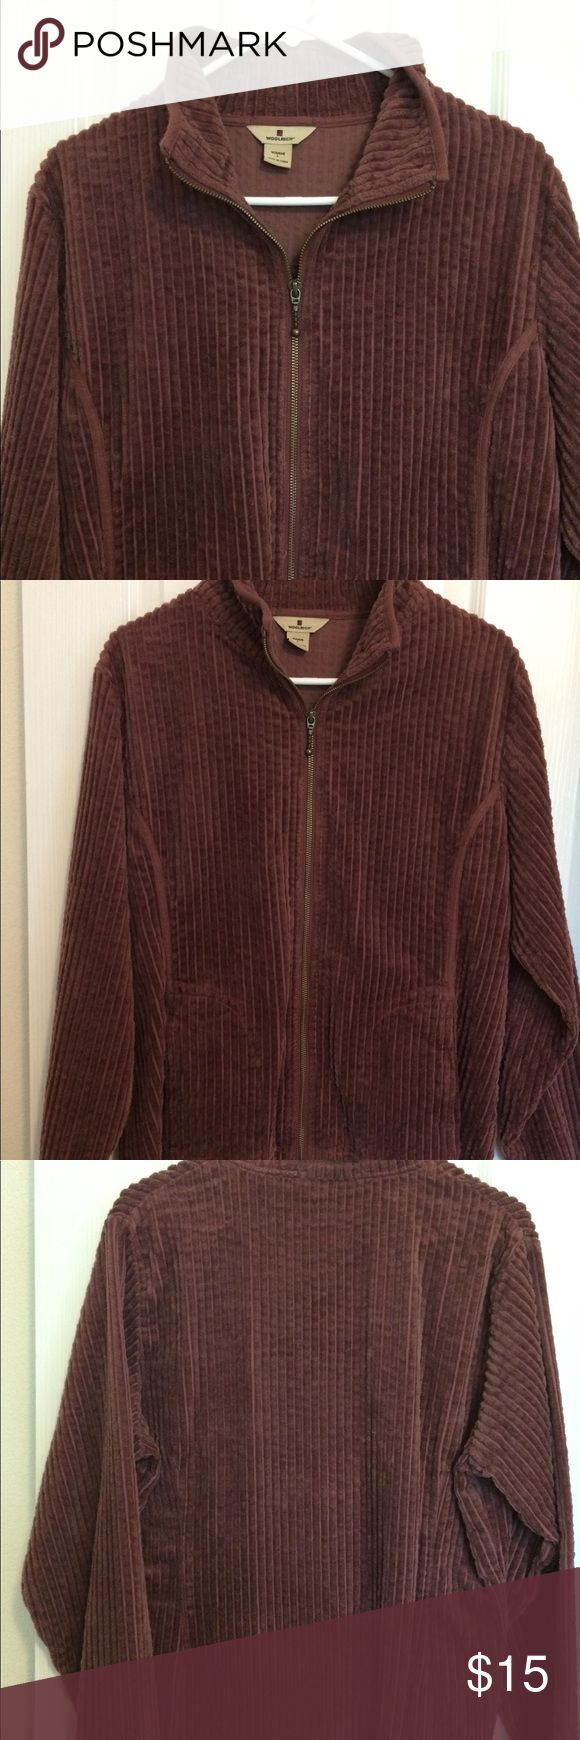 Women's L Woolrich jacket Woolrich large, burgundy, corduroy, zip up jacket. This jacket is forgiving and comfortable, while still looking gooooddd!! Woolrich Jackets & Coats